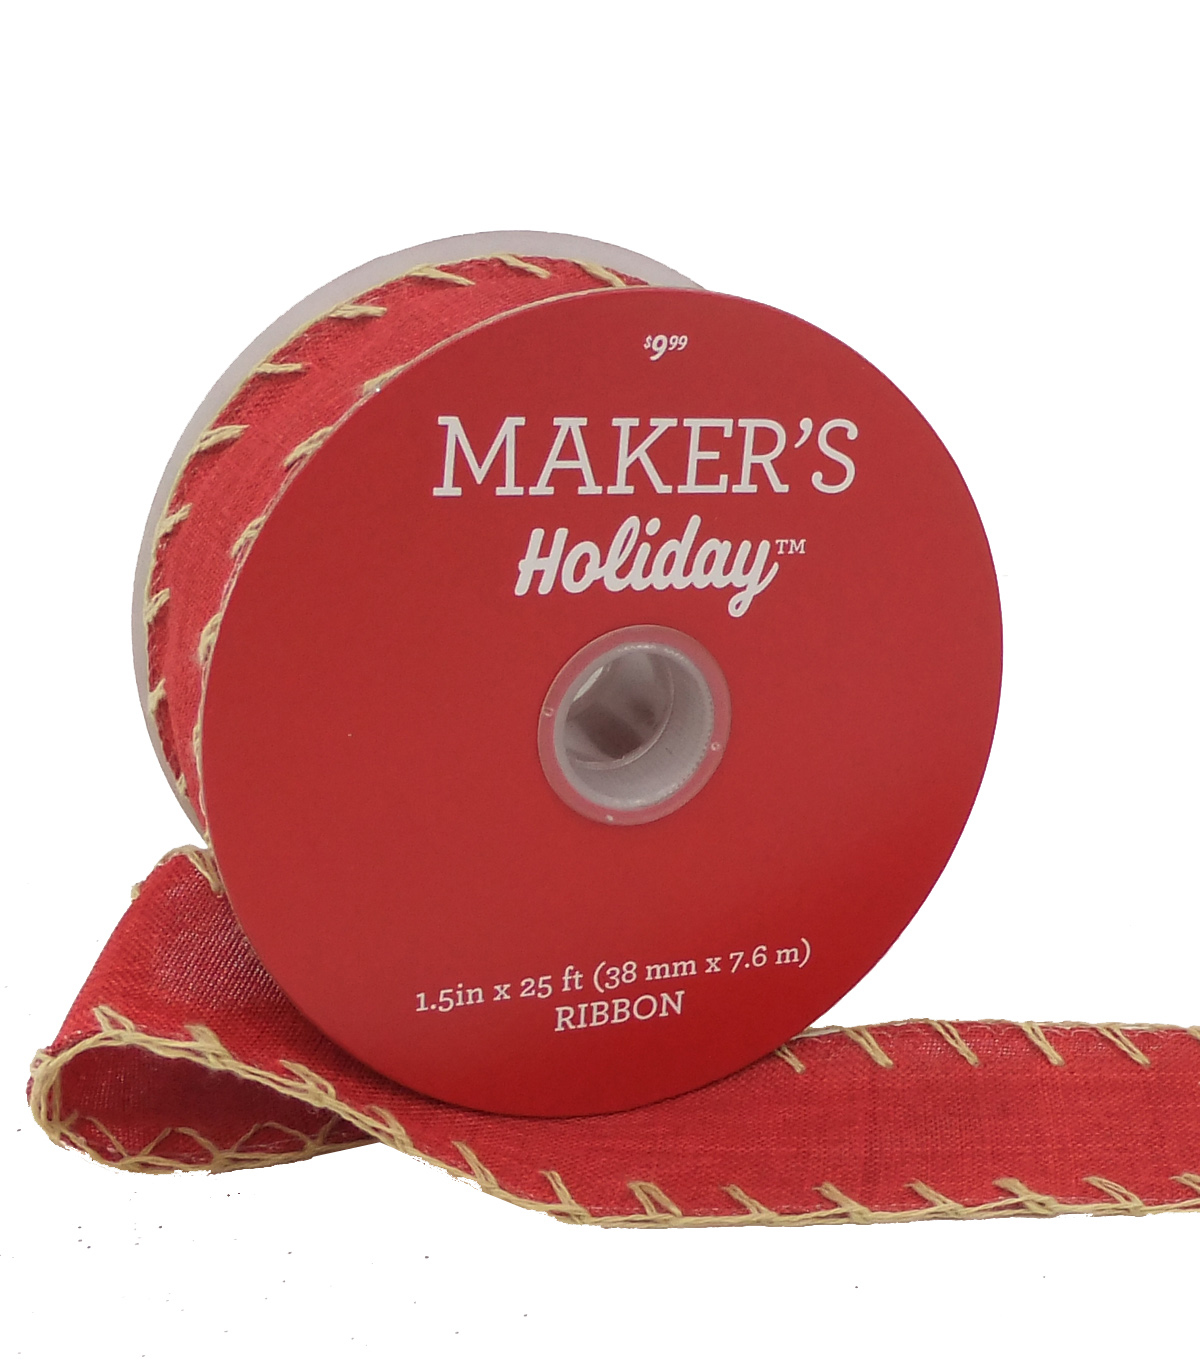 Maker's Holiday Christmas Linen Ribbon 1.5''X25'-Red with Tan Stitch